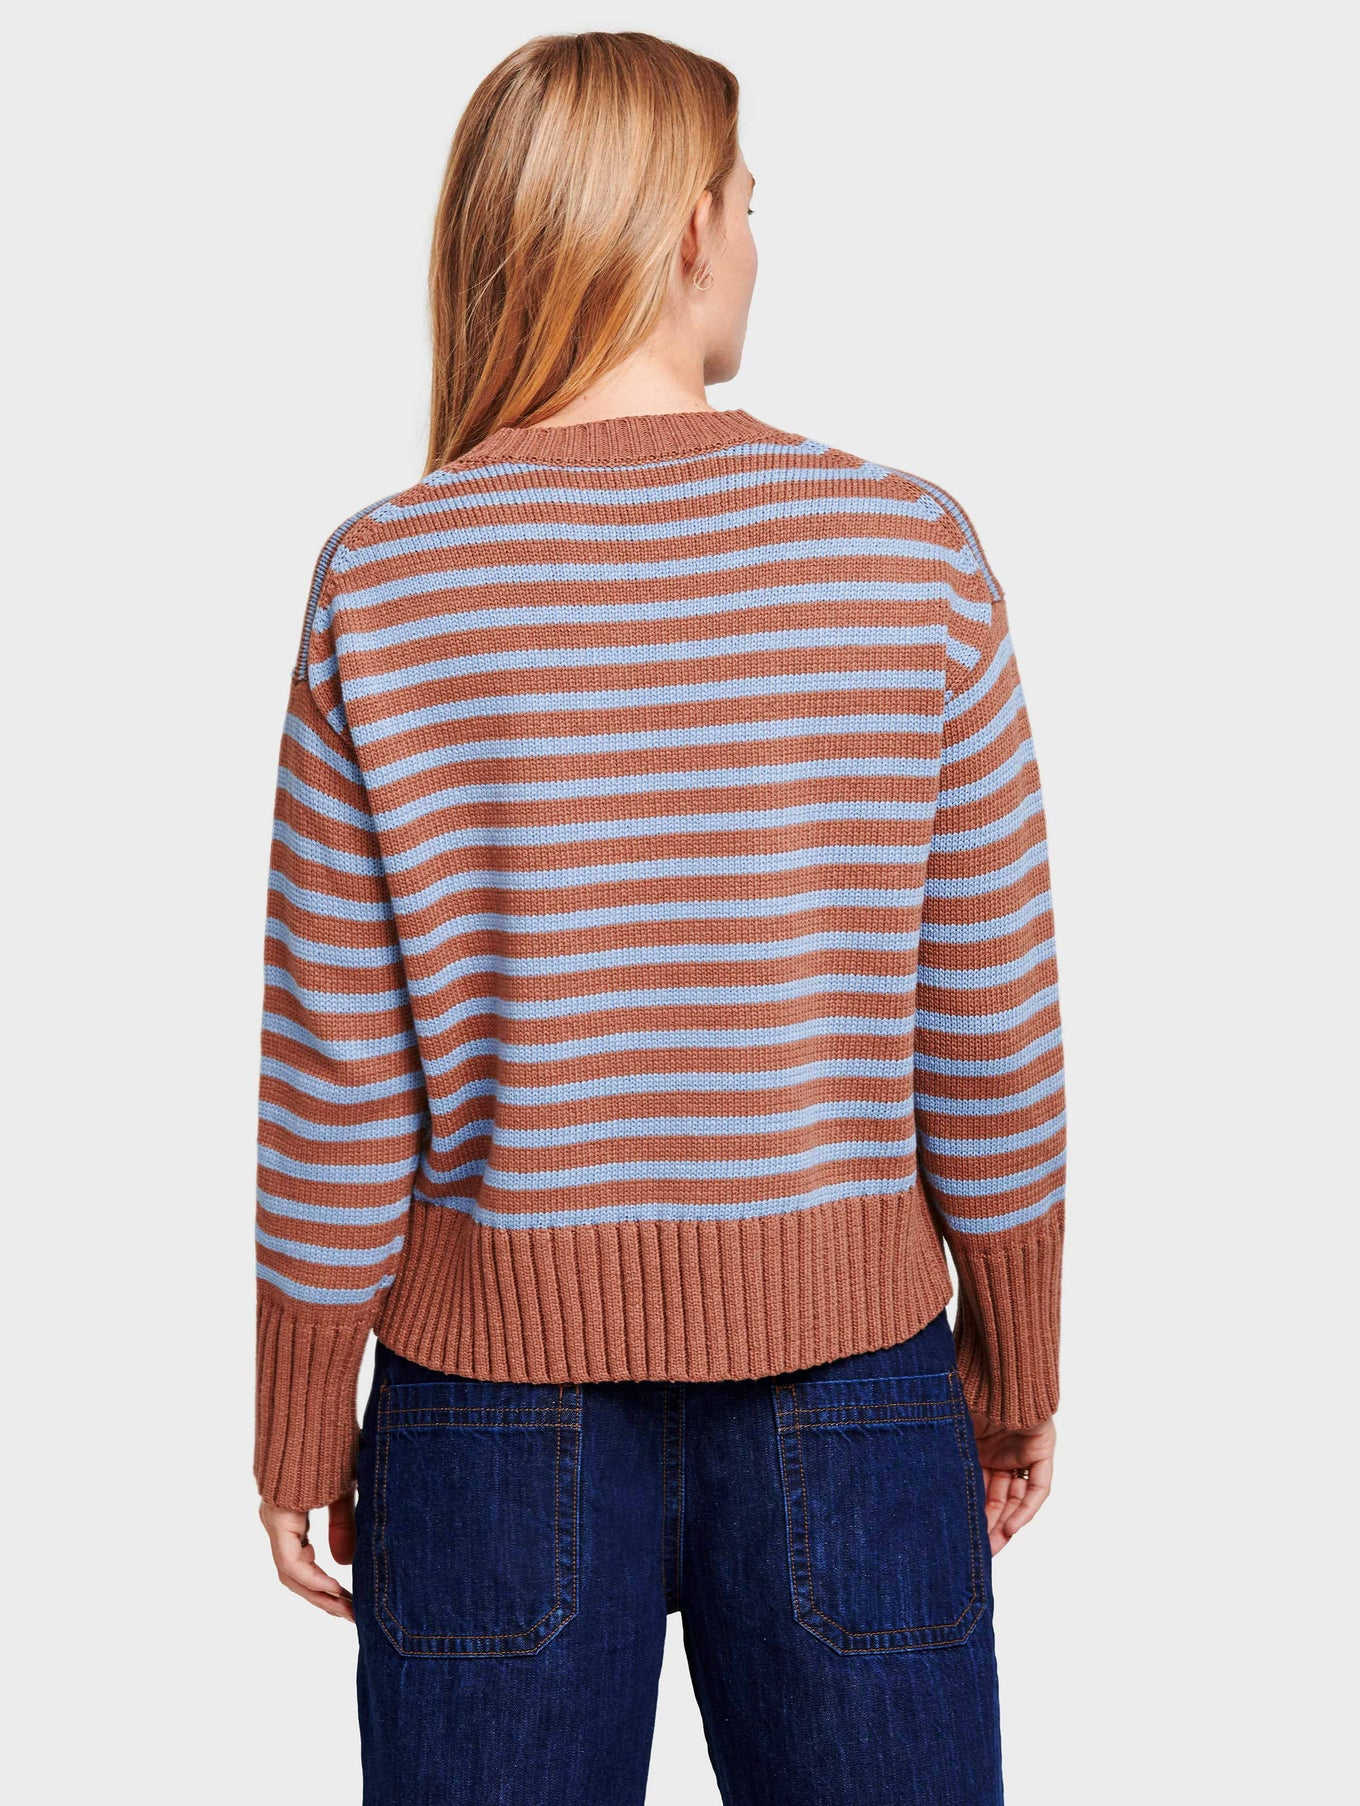 Cotton Striped Fluid Hem Crewneck - Baltic/Sandalwood - Image 4